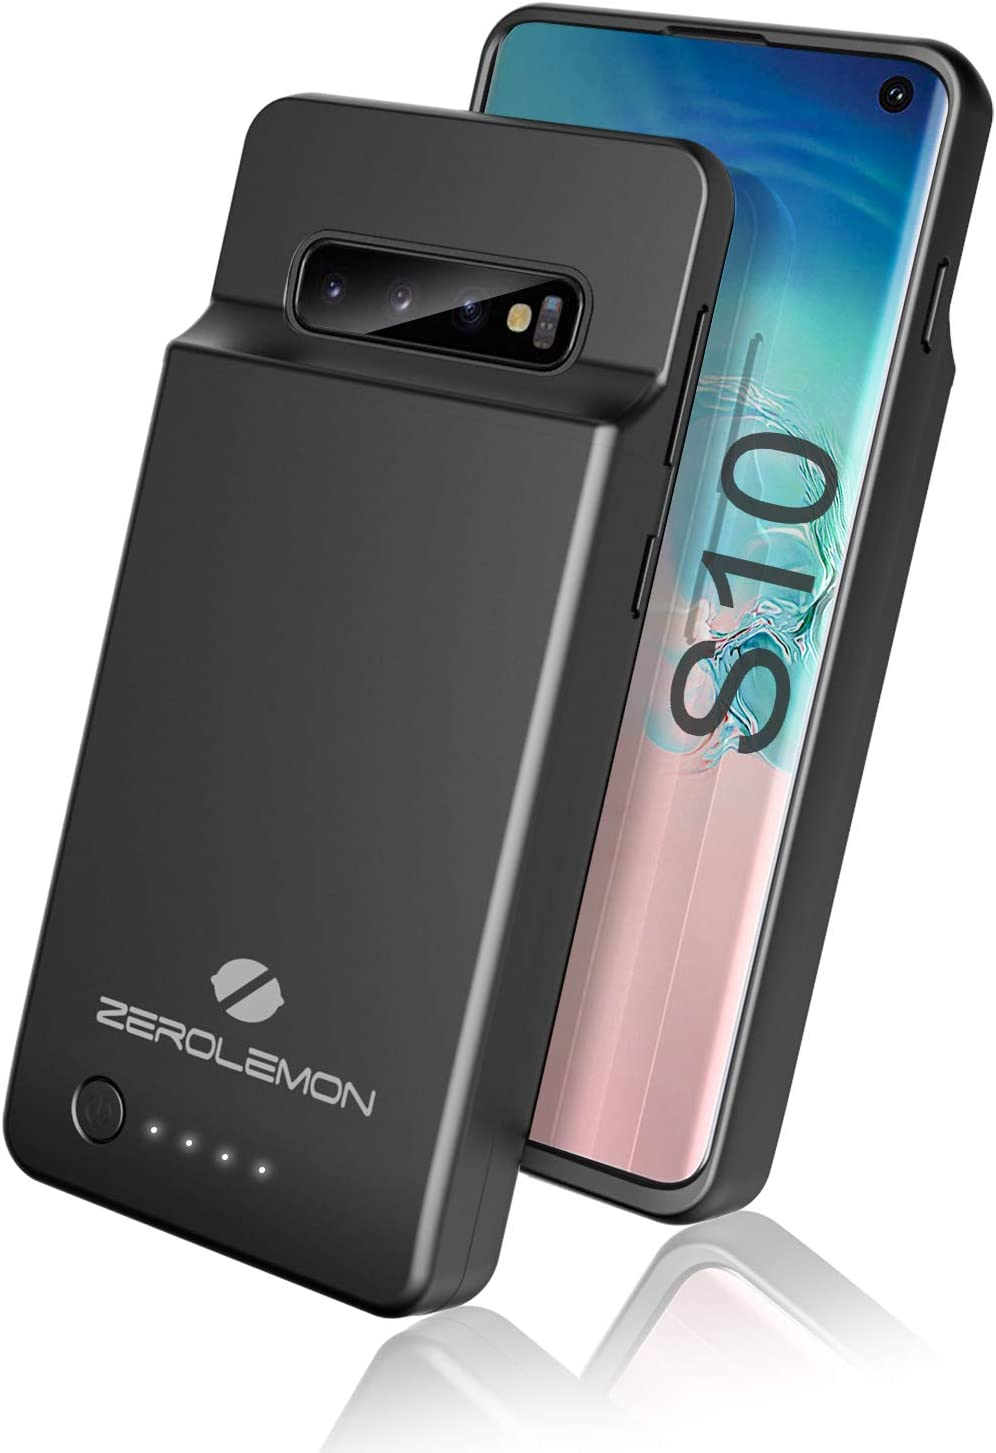 ZeroLemon Galaxy S10 Battery Case, 5000mAh Extended Rechargeable Battery with Soft TPU Protective Portable Case for Galaxy S10 - Black